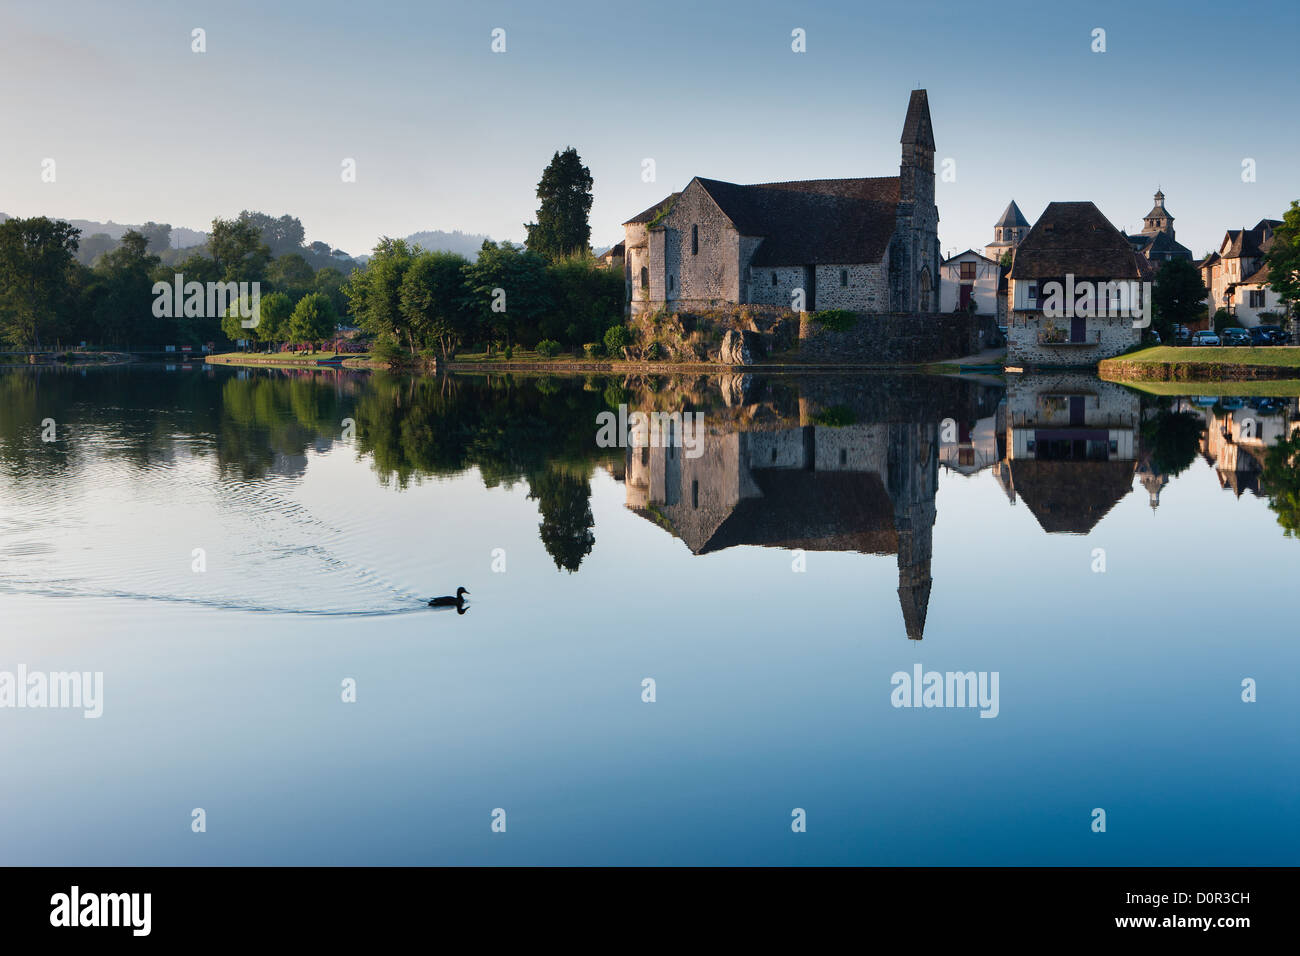 the Dordogne River at Beaulieu sur Dordogne, Corrèze, Limousin, France - Stock Image